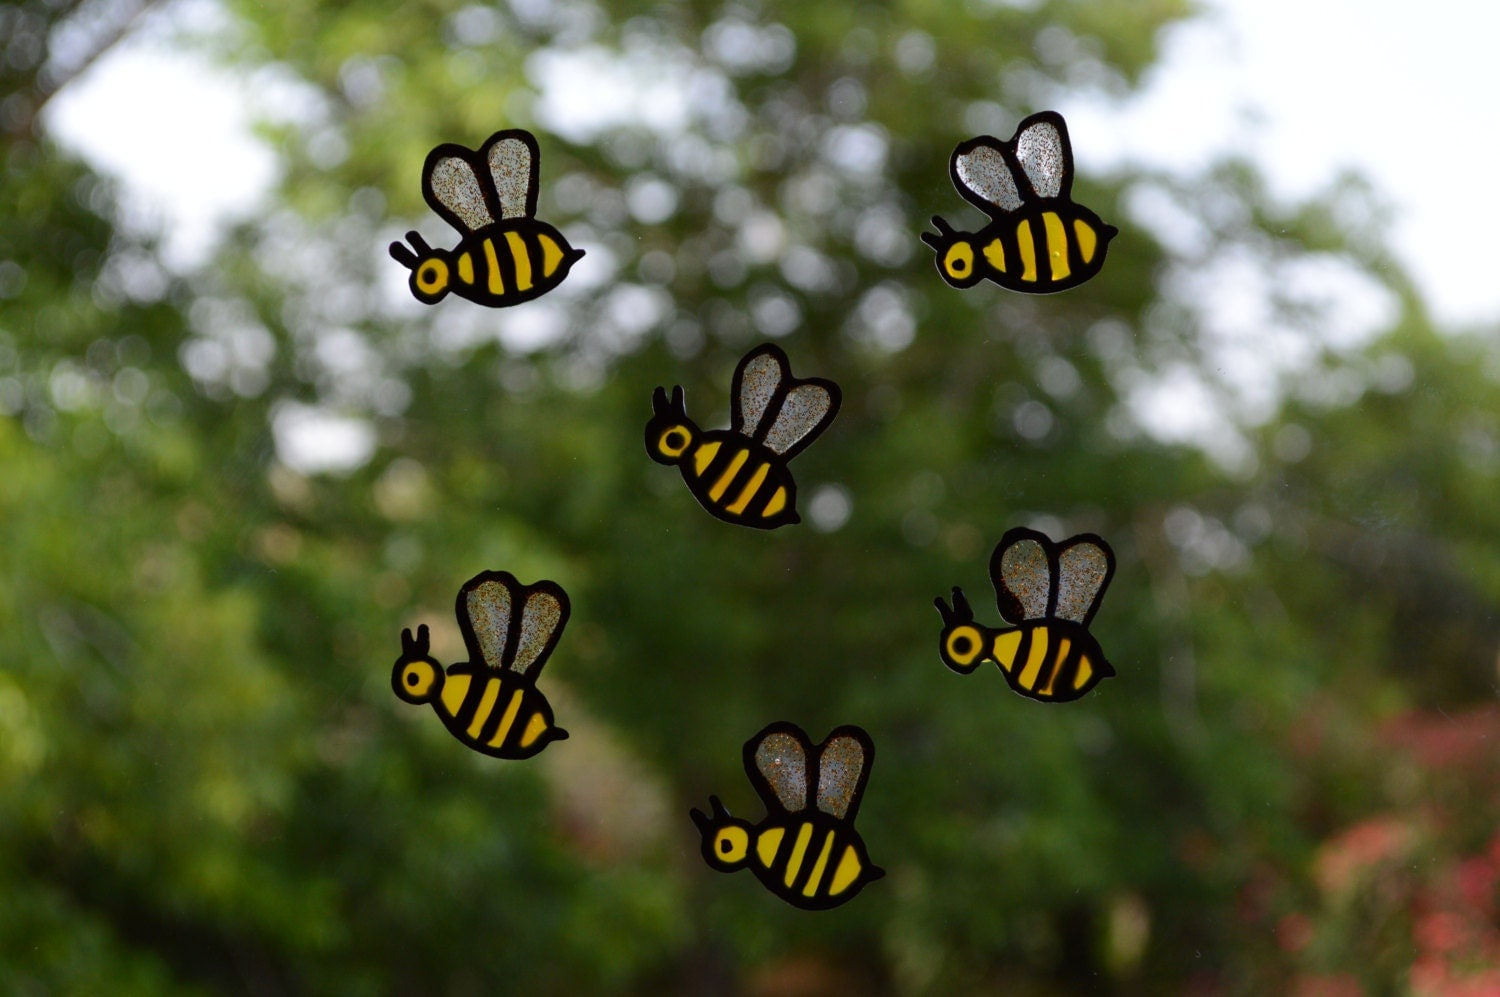 Bumble bee decals window decals bee decorations glass decal for Bumble bee mural